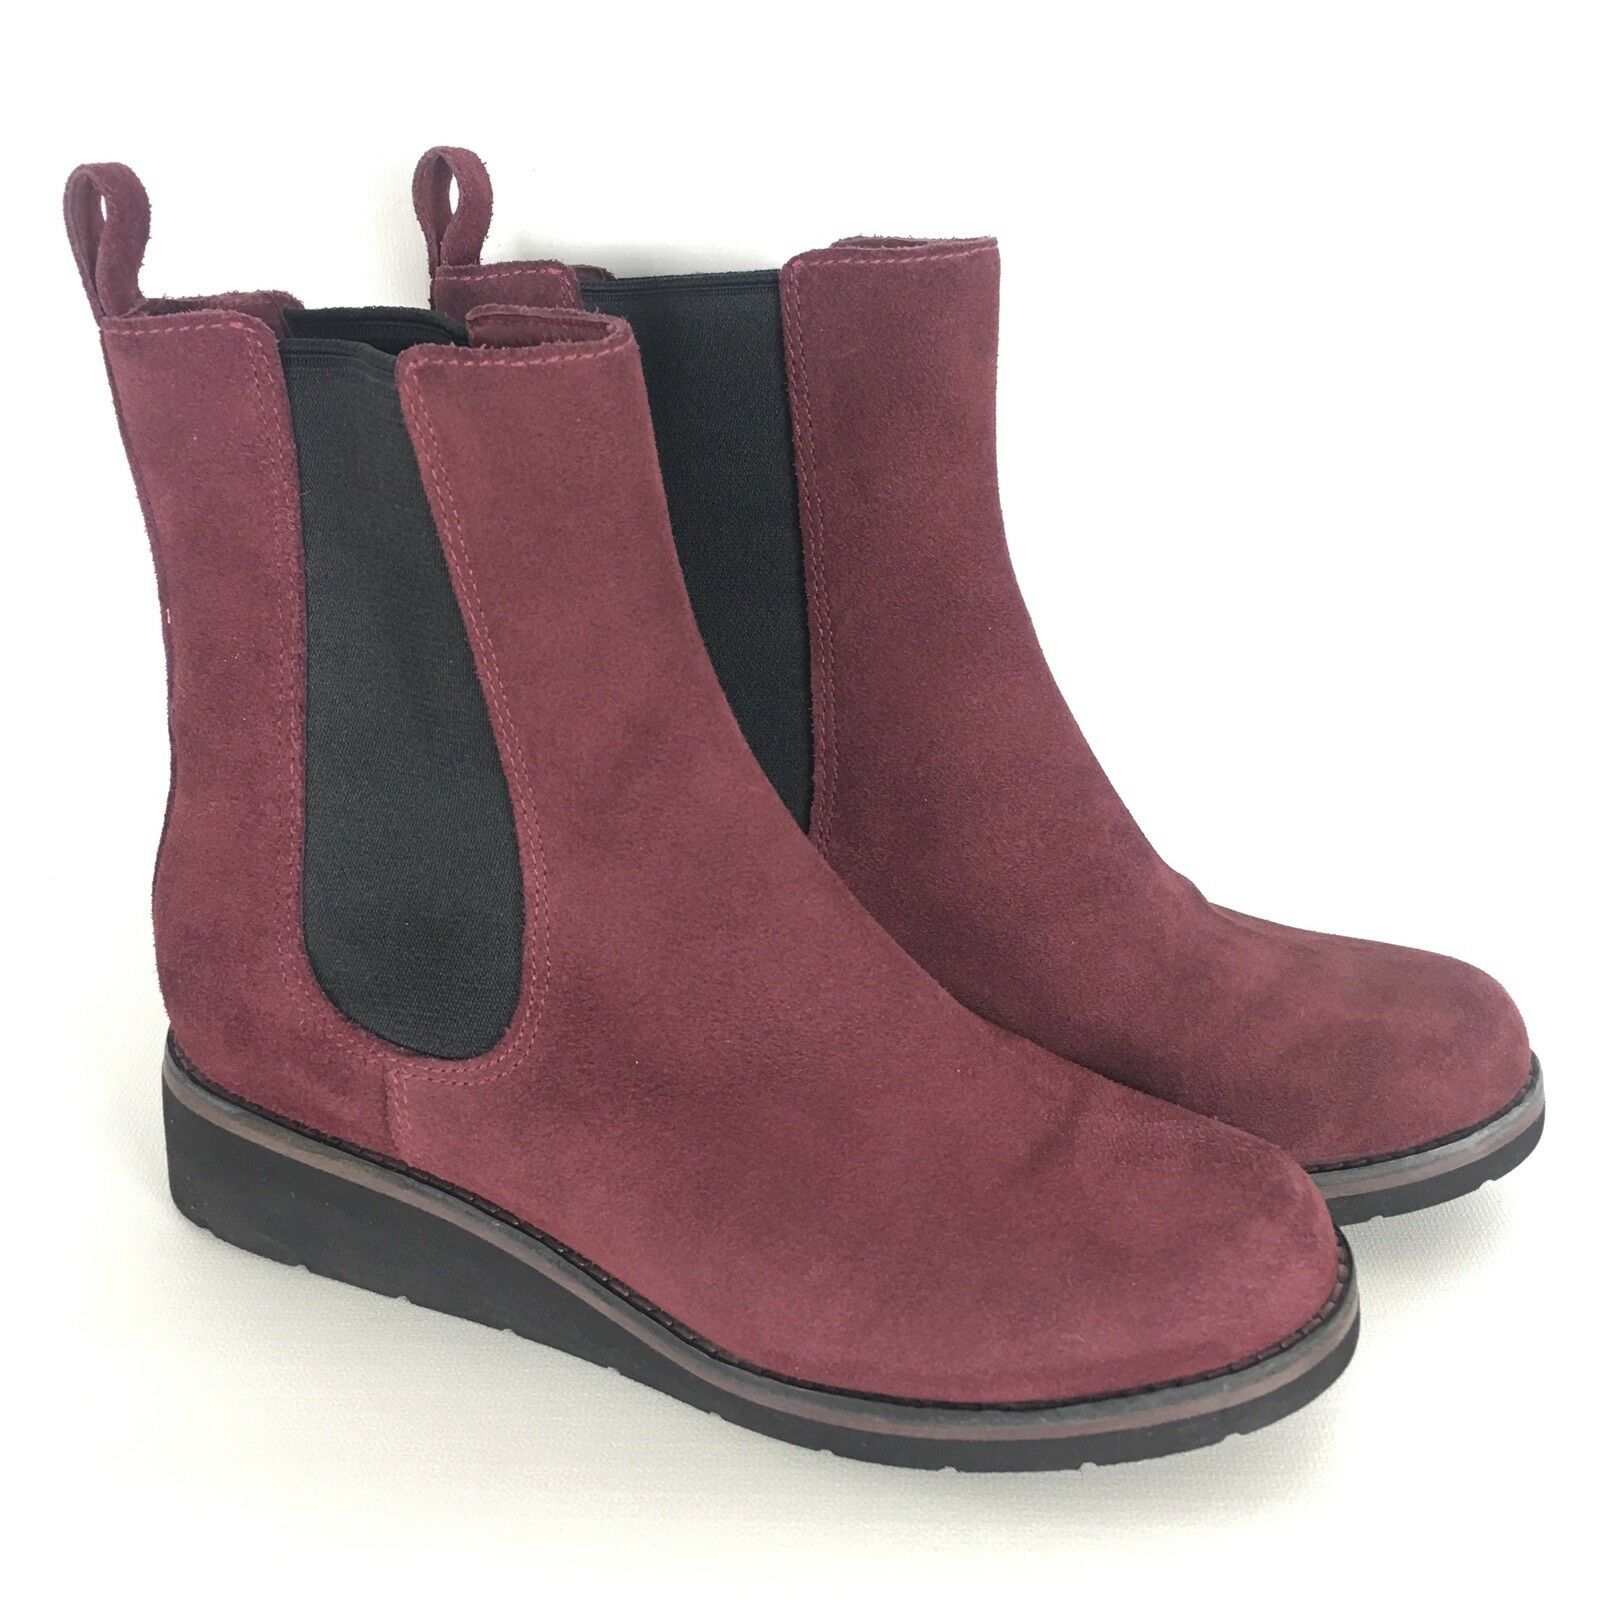 Cole Haan Johanna burgundy Suede Waterproof Wedge Stiefel damen SZ 8 B Waterproof